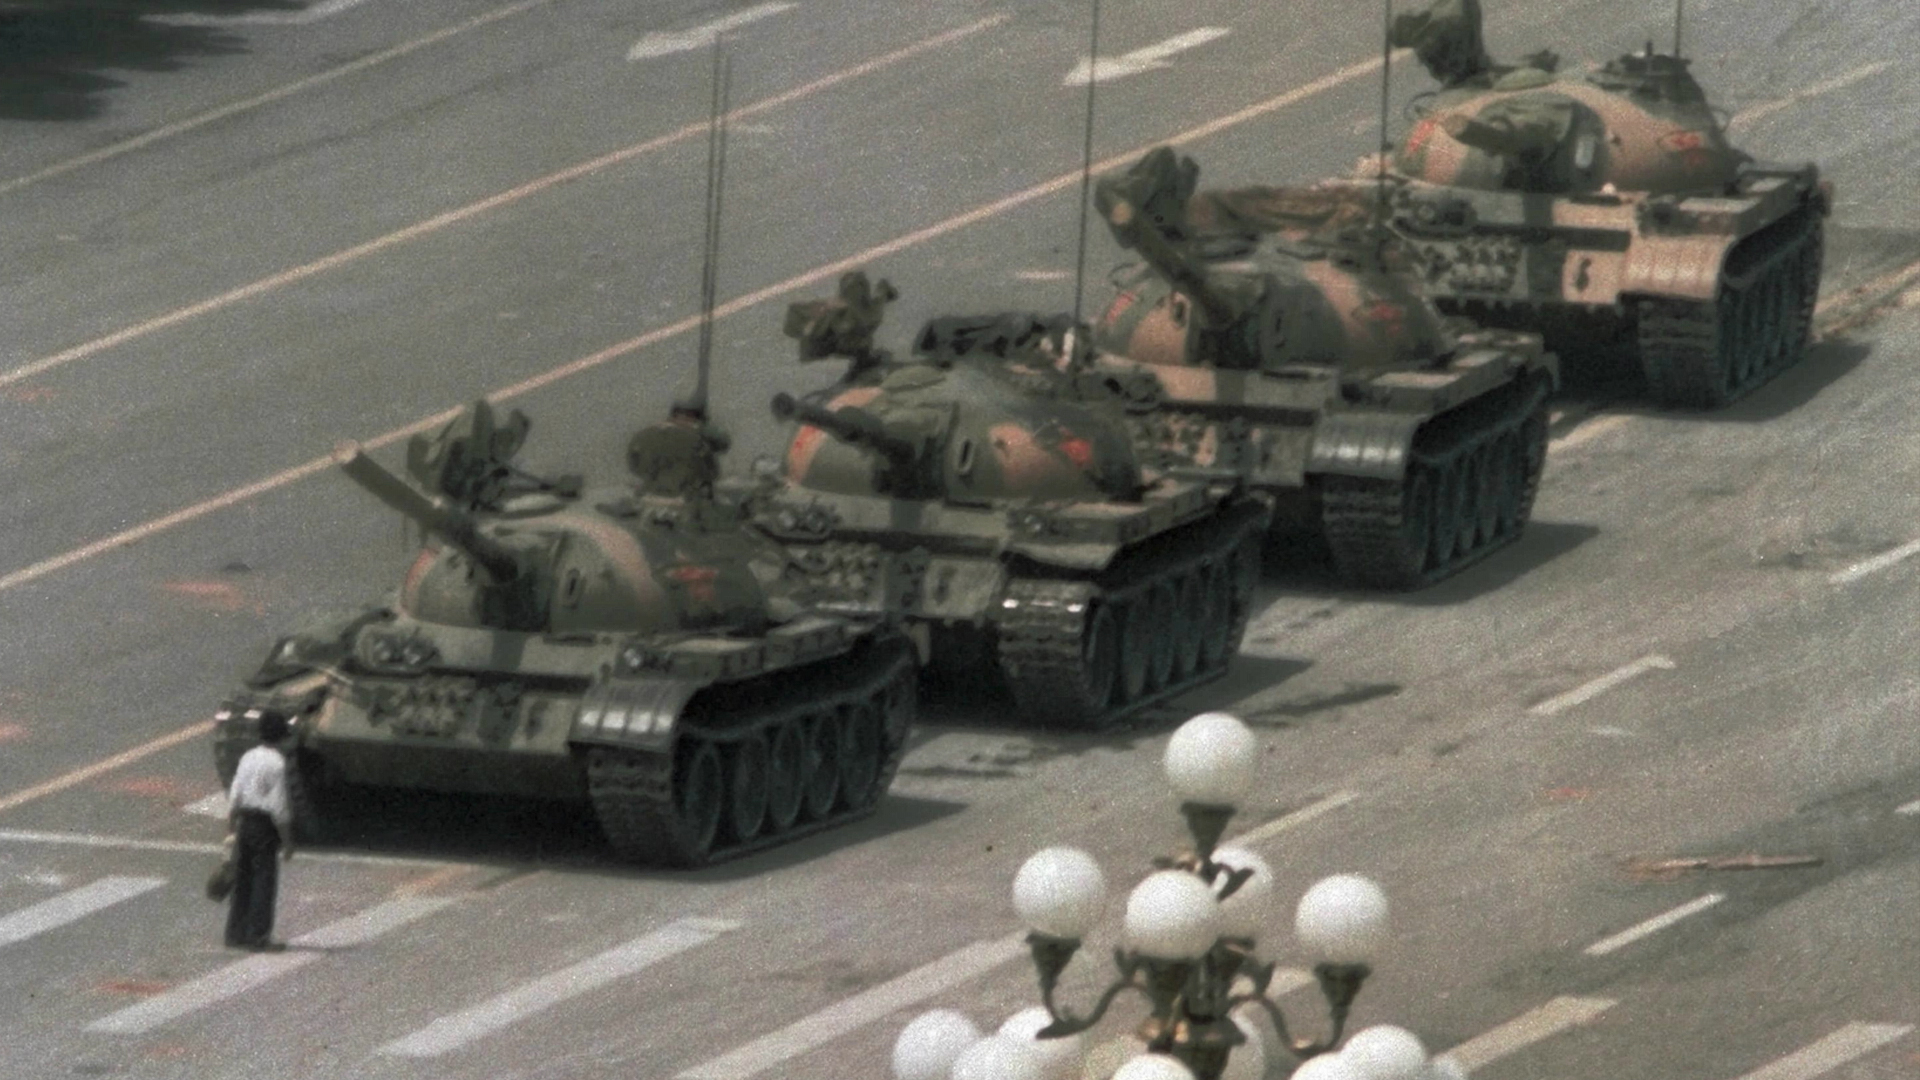 Looking back at the Tiananmen Square massacre